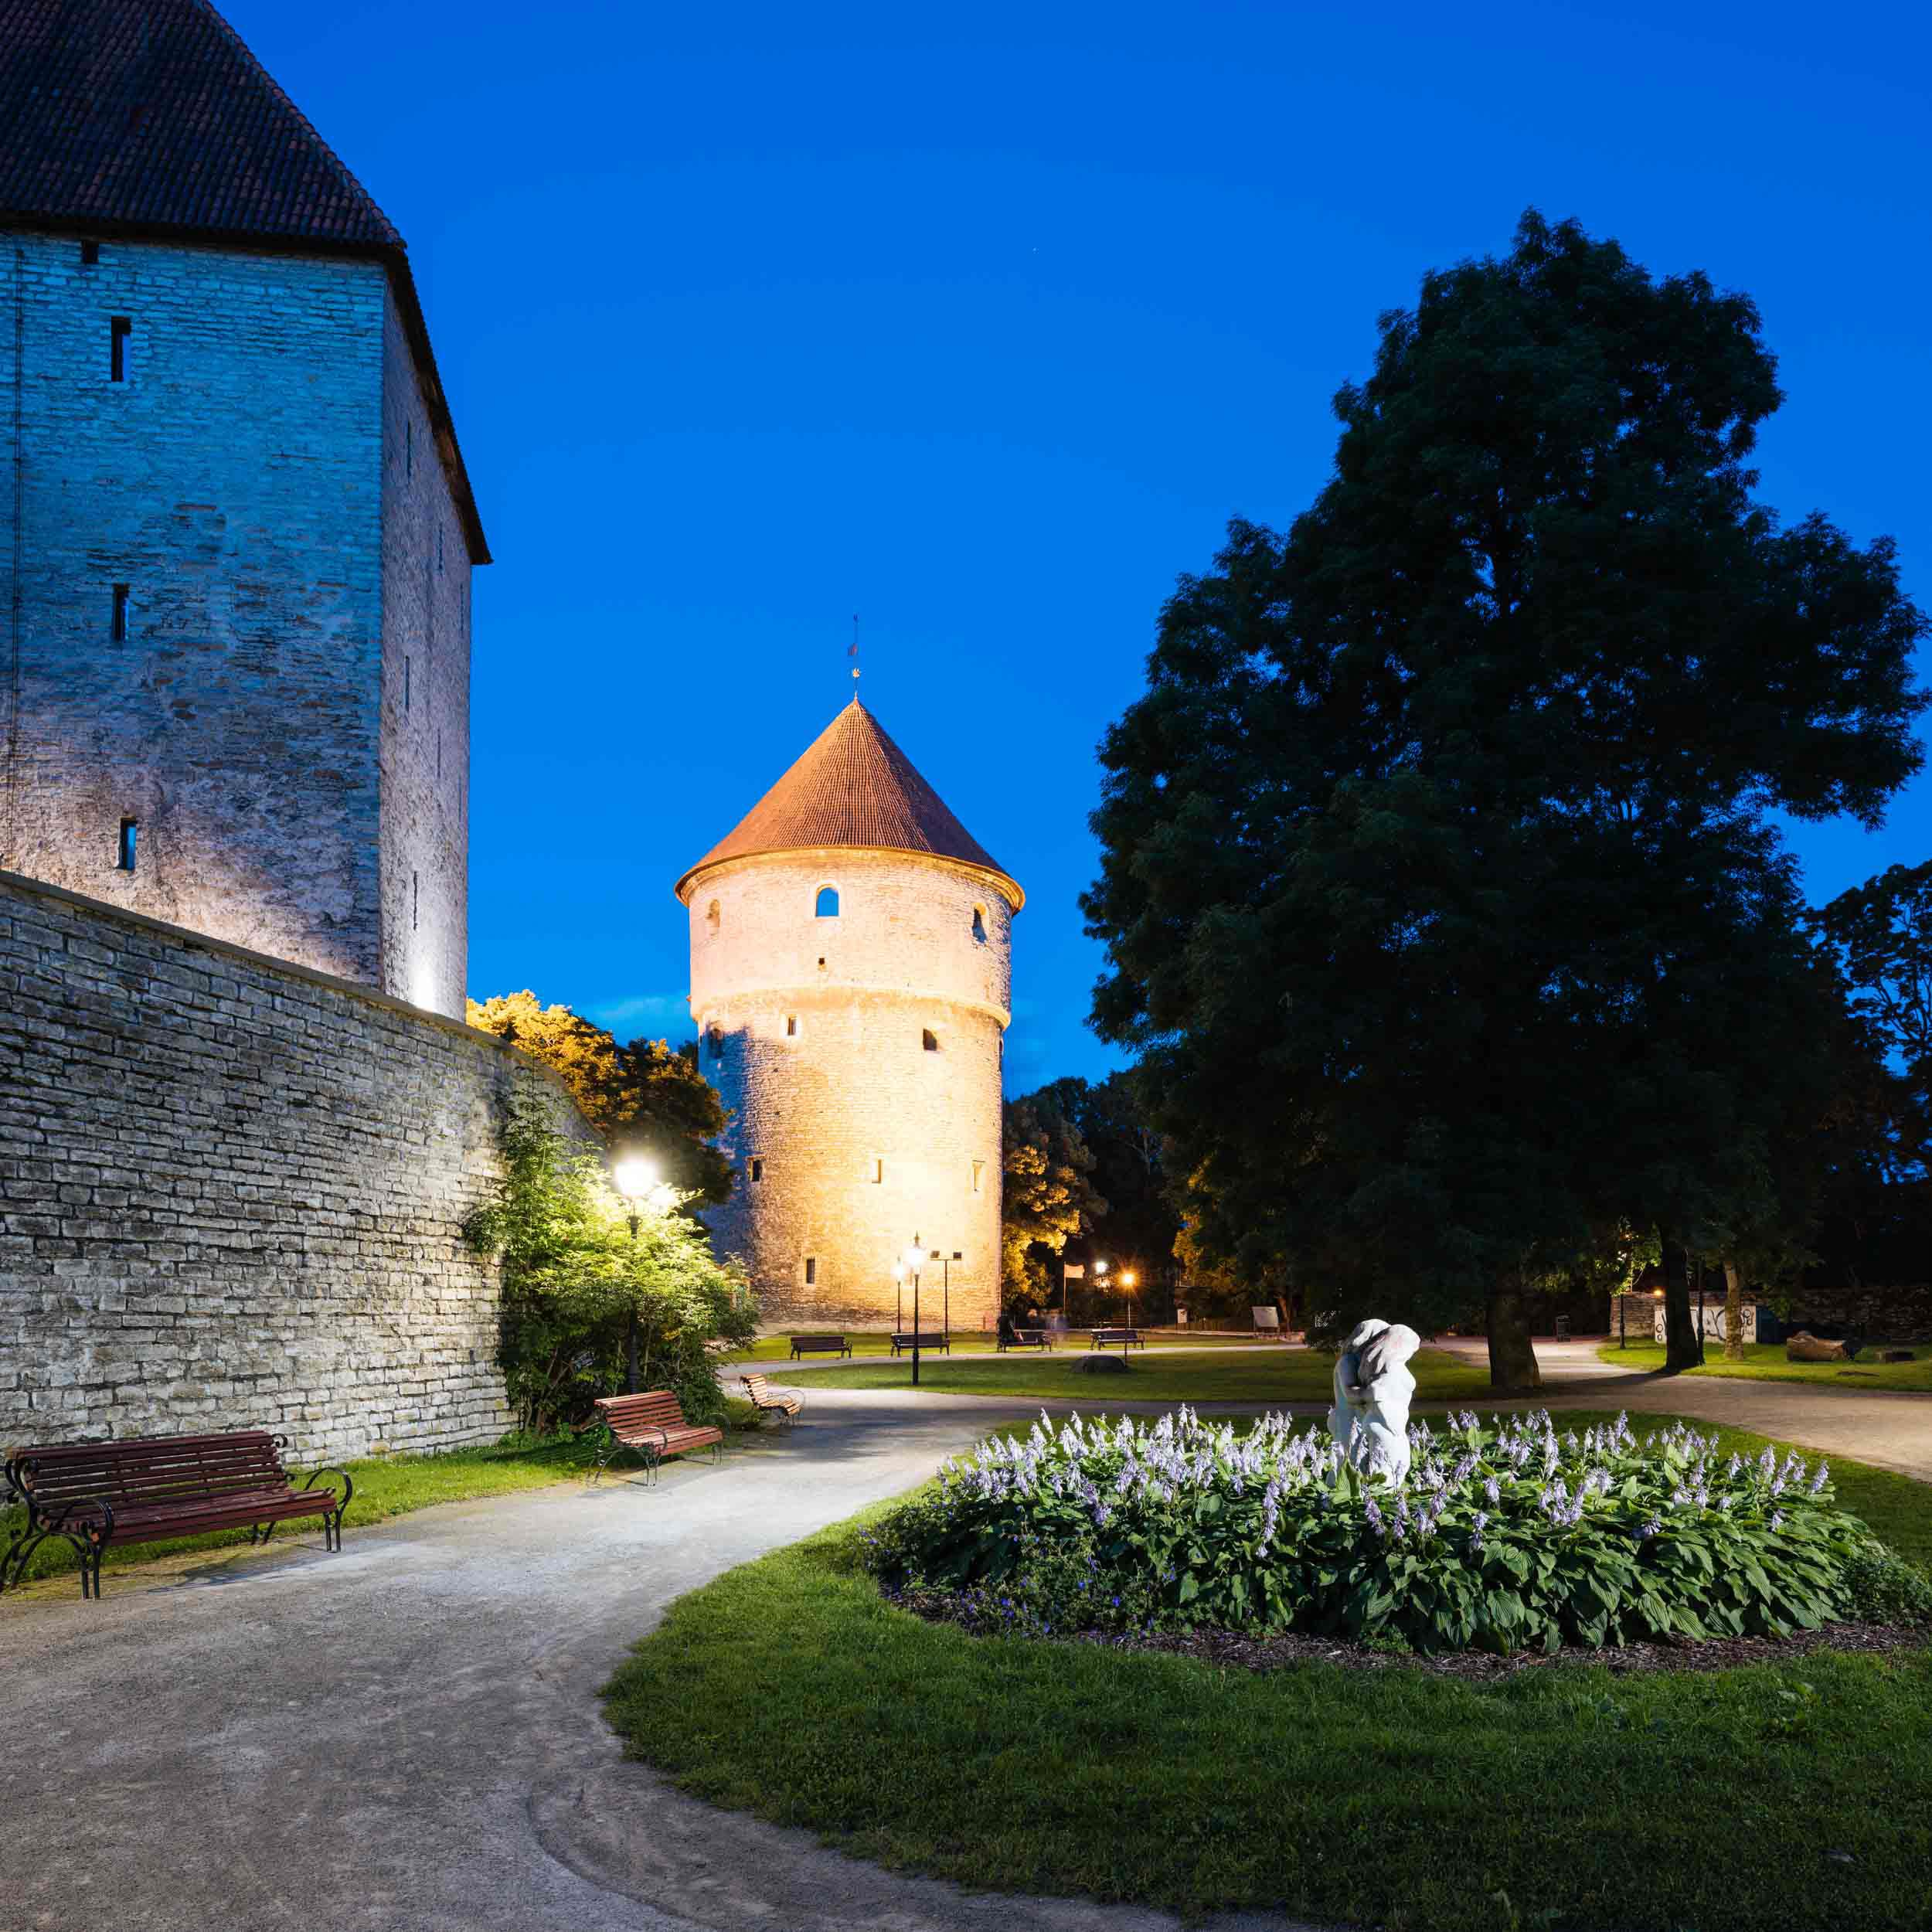 town-night-nobody-tallinn-estonia-baltic